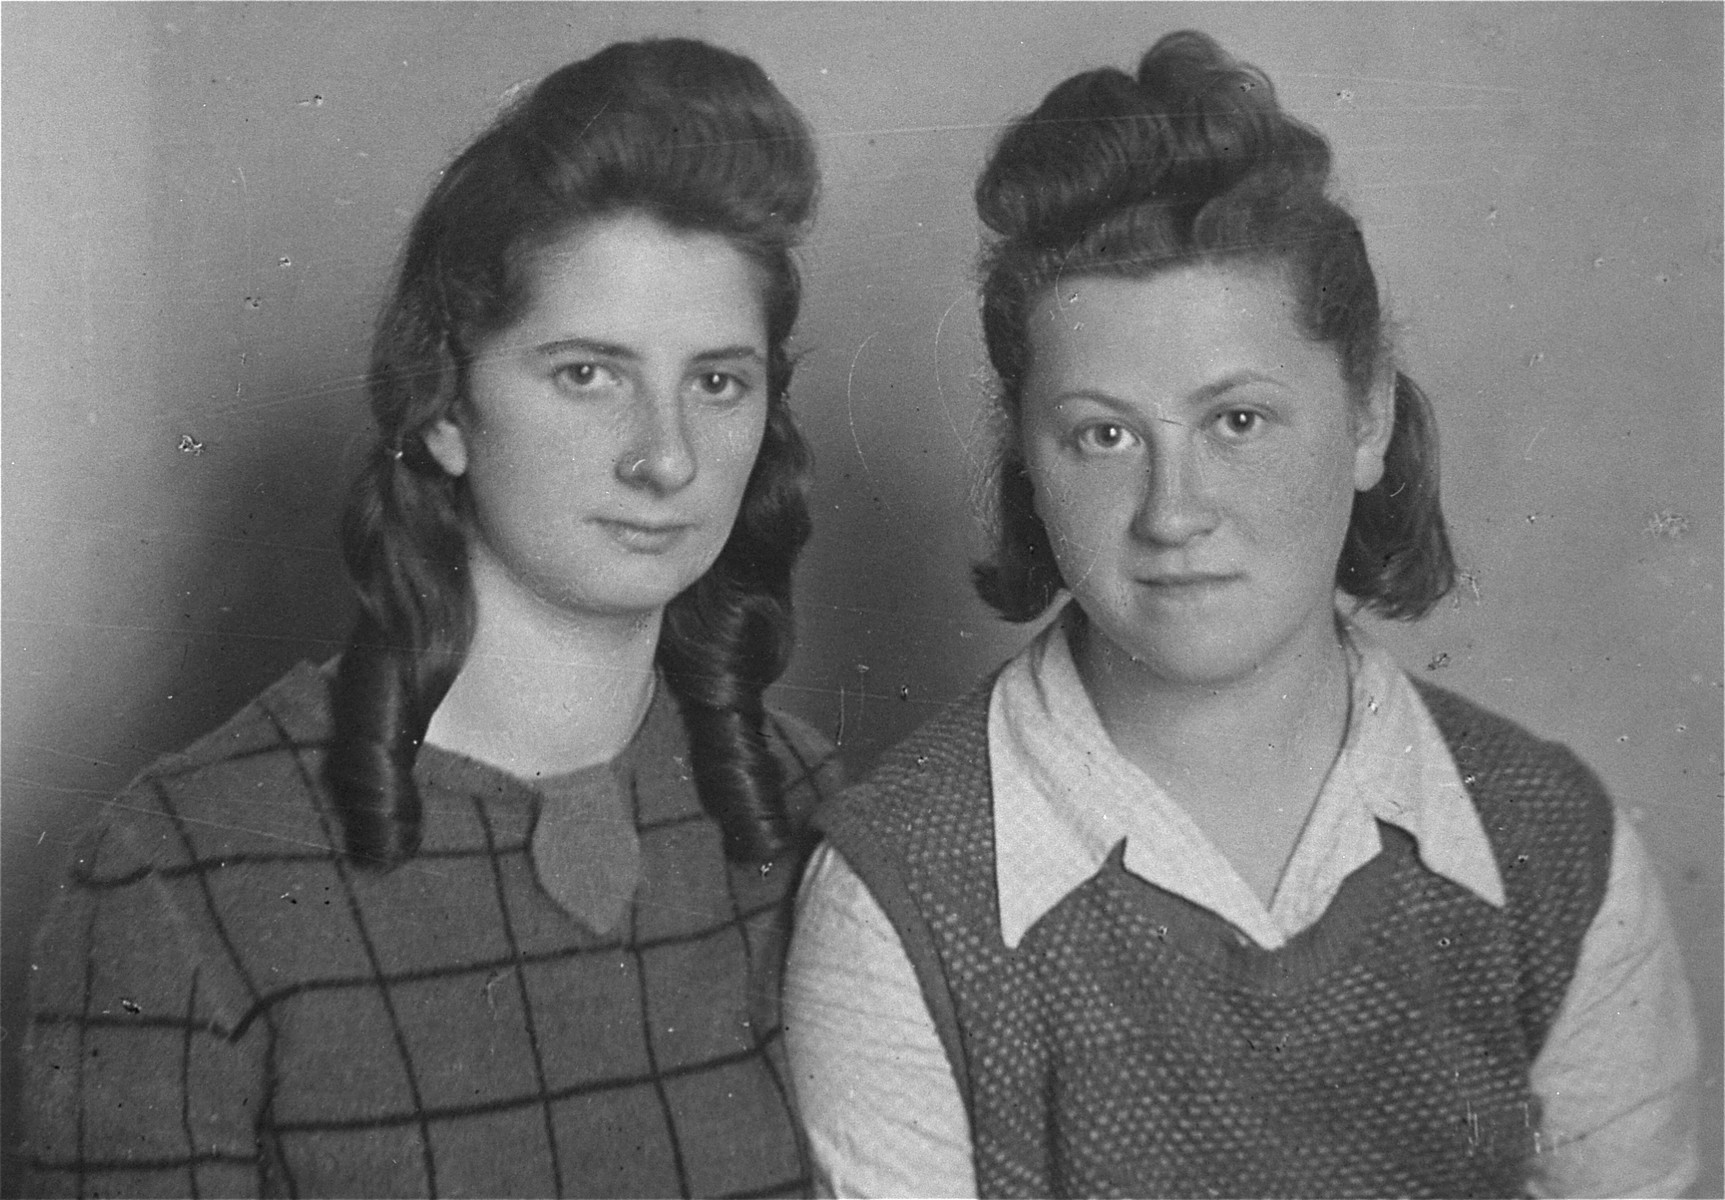 Portrait of Lodzia Hamersztajn and Ester Fiks (Julcia) after the liberation.  Both were members of the Hashomer Hatzair Zionist youth movement and couriers in the Jewish underground in Poland.   Julcia met Lodzia Hamersztajn in 1943 while they were both living on false papers in Krakow and working for the Germans.  They stayed together until the liberation.  Julcia had a younger brother, Benzion, known as Bolus, who survived the war on the Aryan side of Warsaw as one of the cigarette sellers in Three Crosses Square.  Julcia and her brother immigrated to Palestine in 1946.